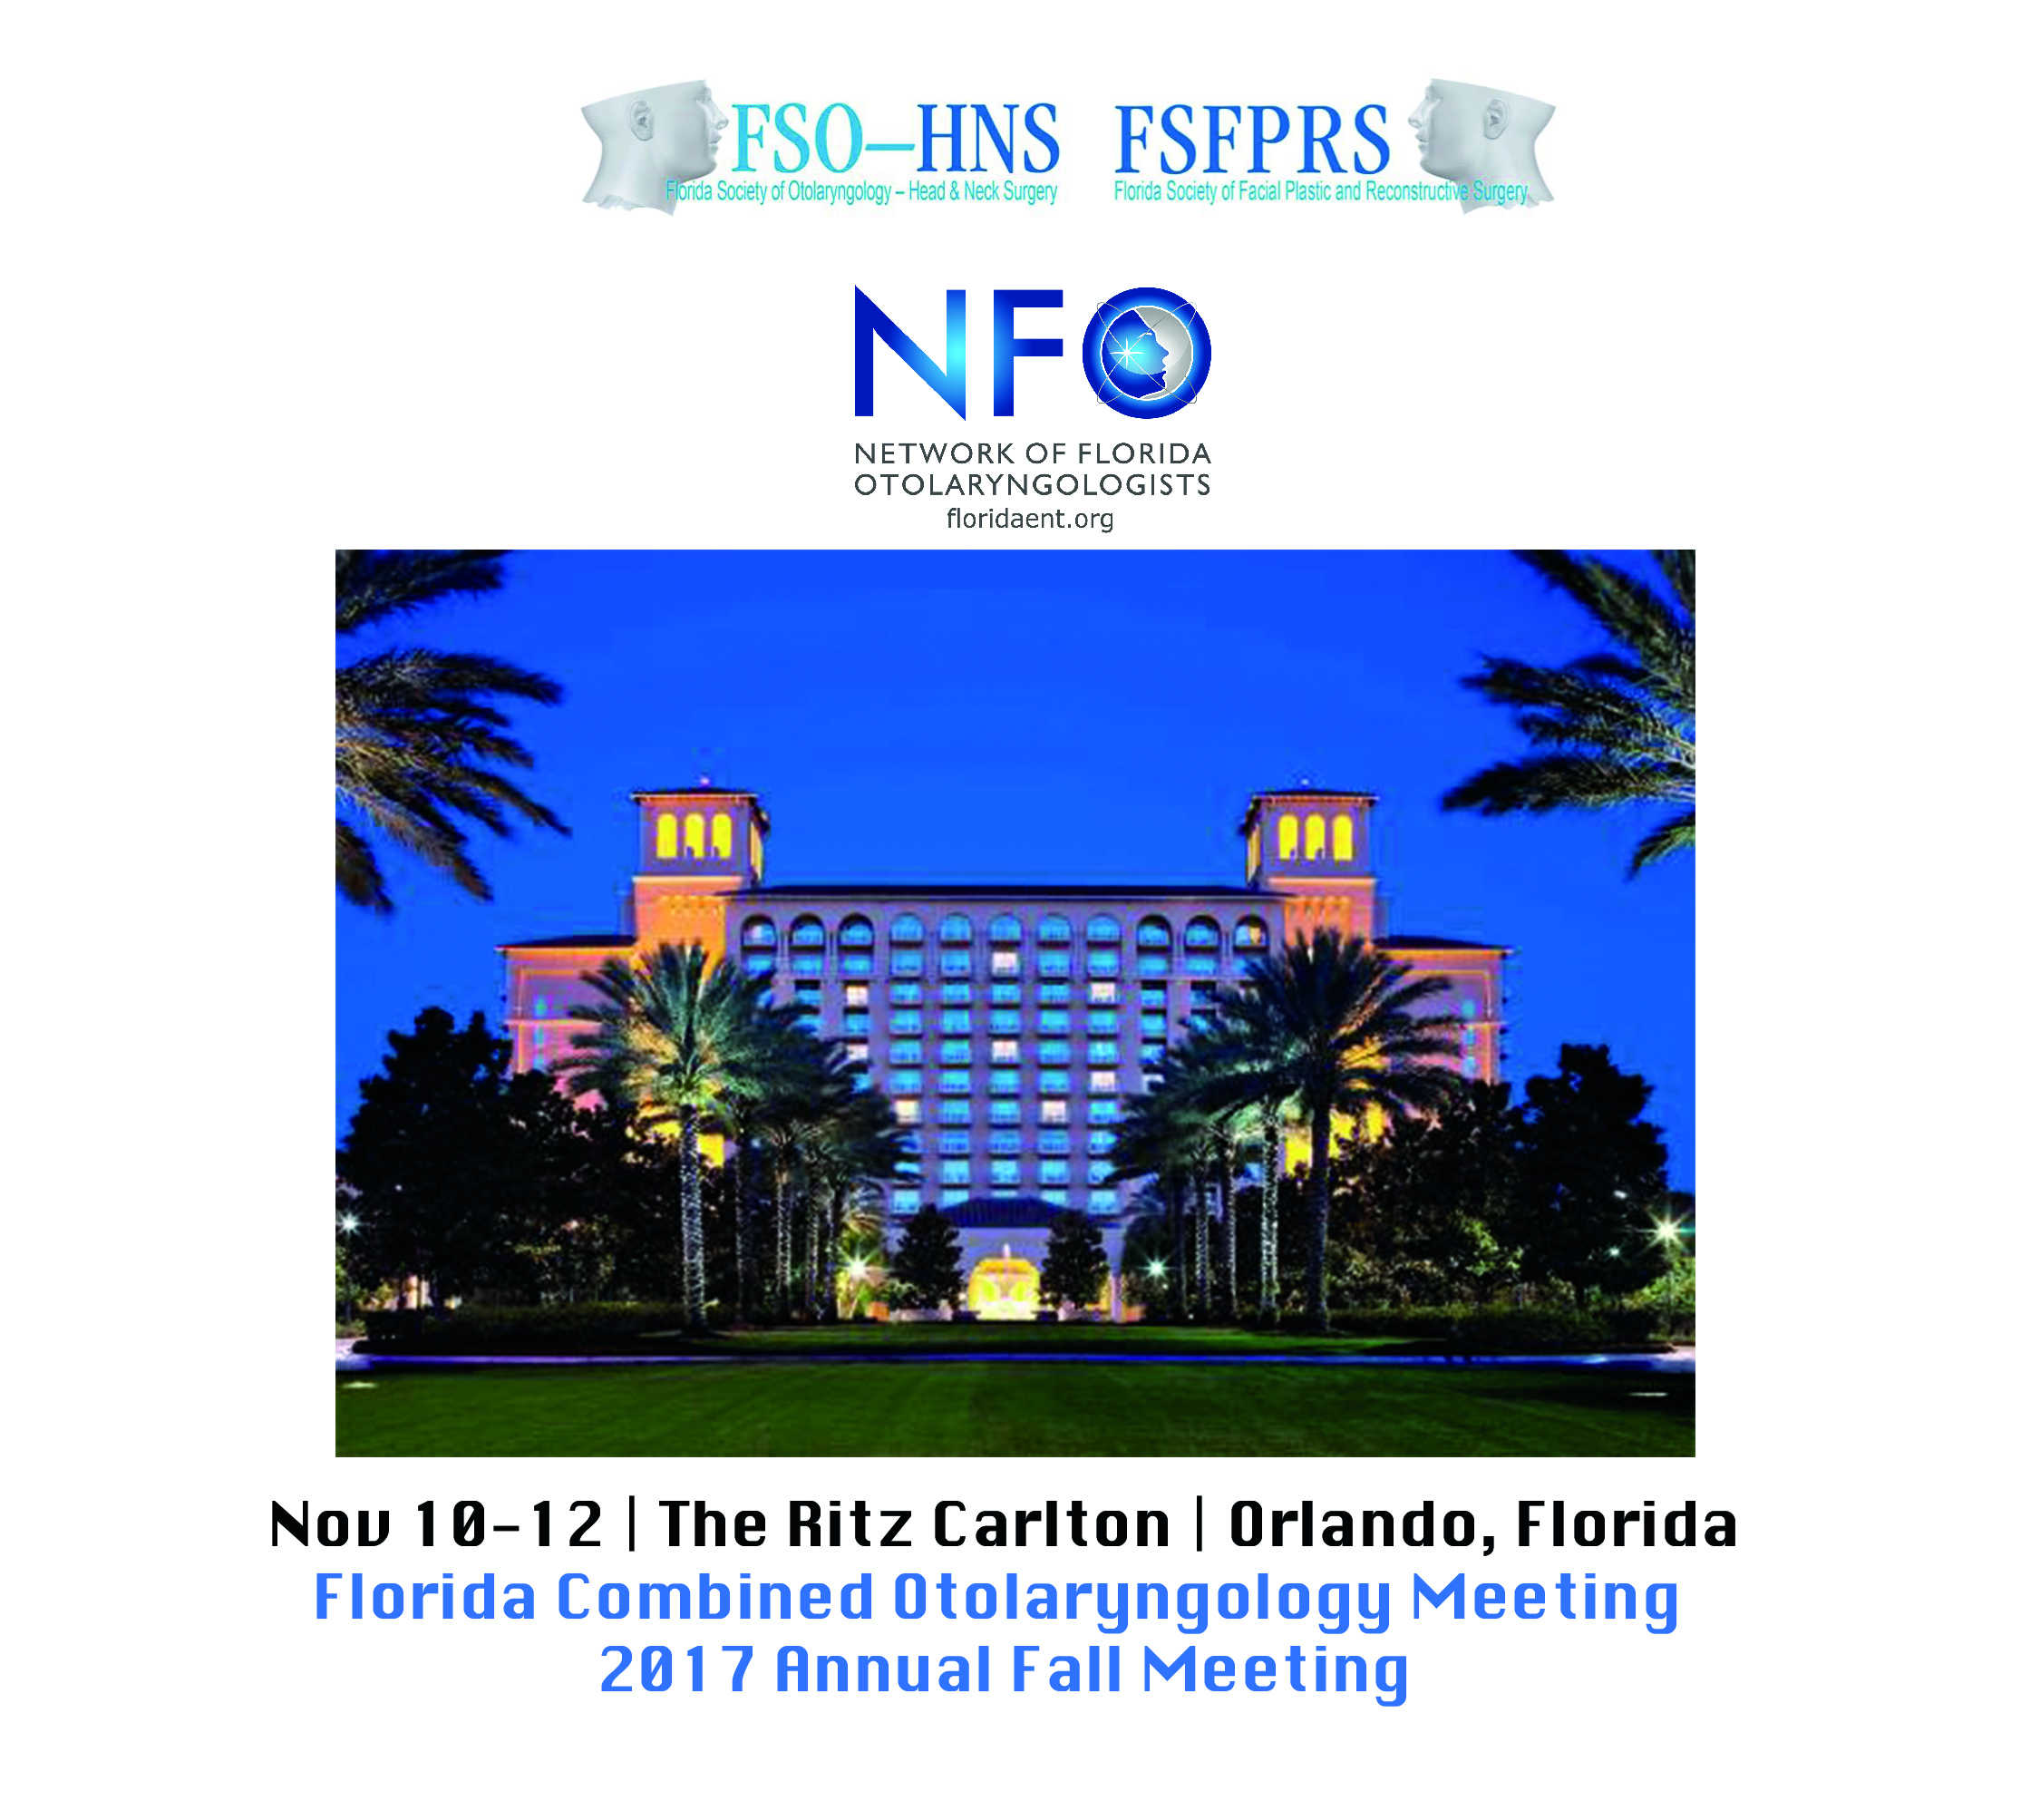 FLORIDA COMBINED OTOLARYNGOLOGY MEETING 2017